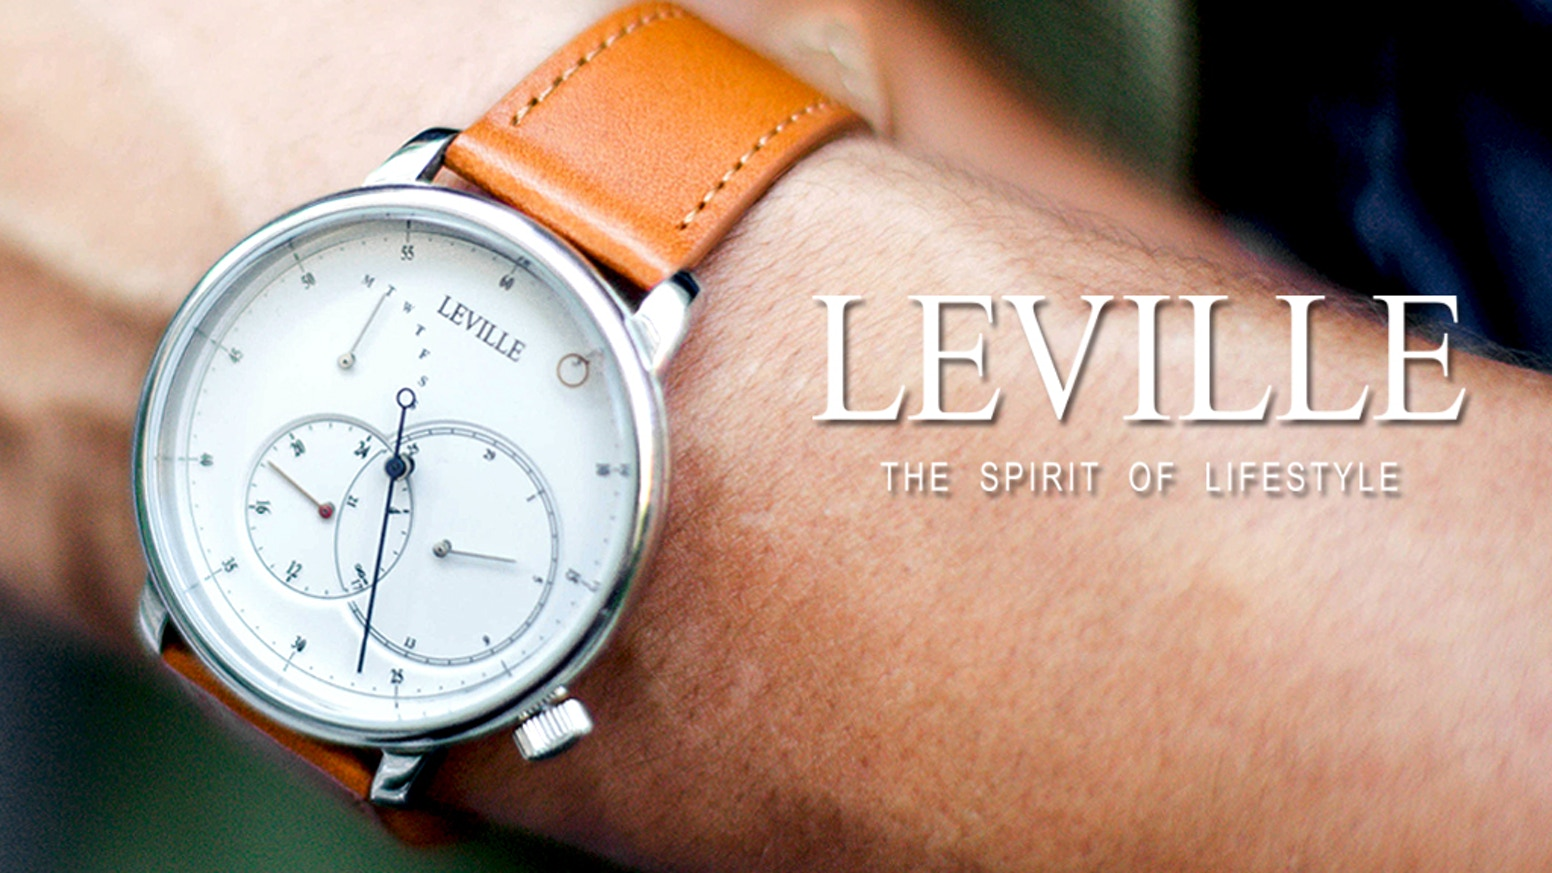 d0fdf8360eb US 99 Modern Minimalist Design Regulator Watches by LEVILLE ...